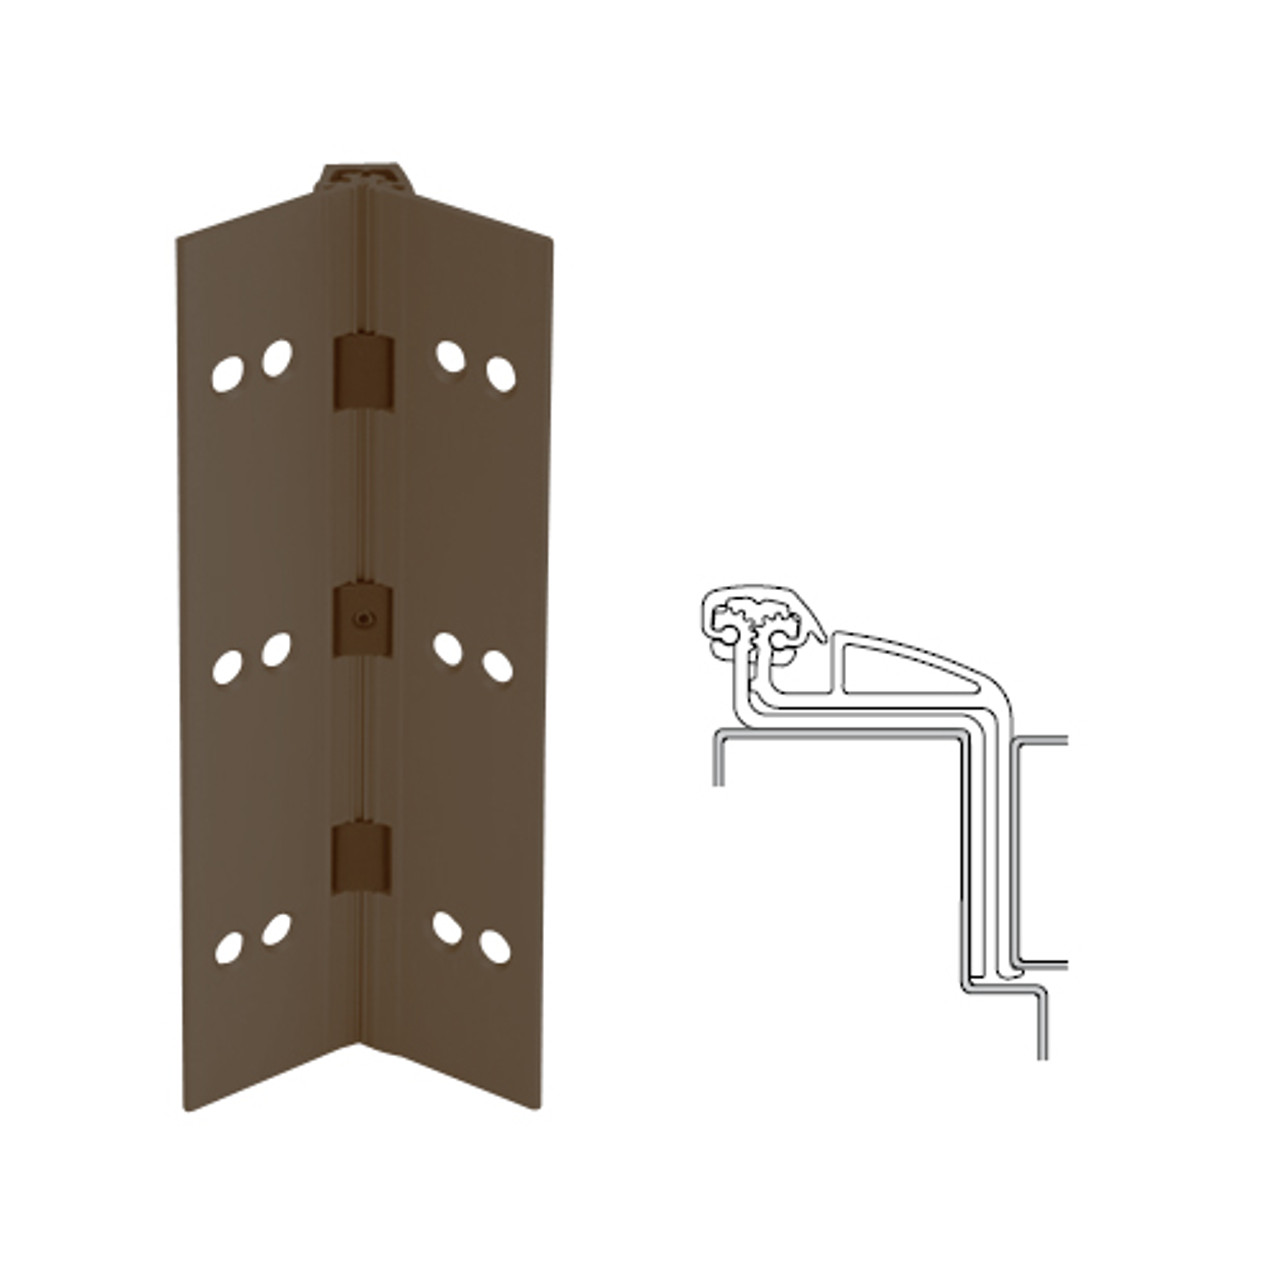 041XY-313AN-120-WD IVES Full Mortise Continuous Geared Hinges with Wood Screws in Dark Bronze Anodized